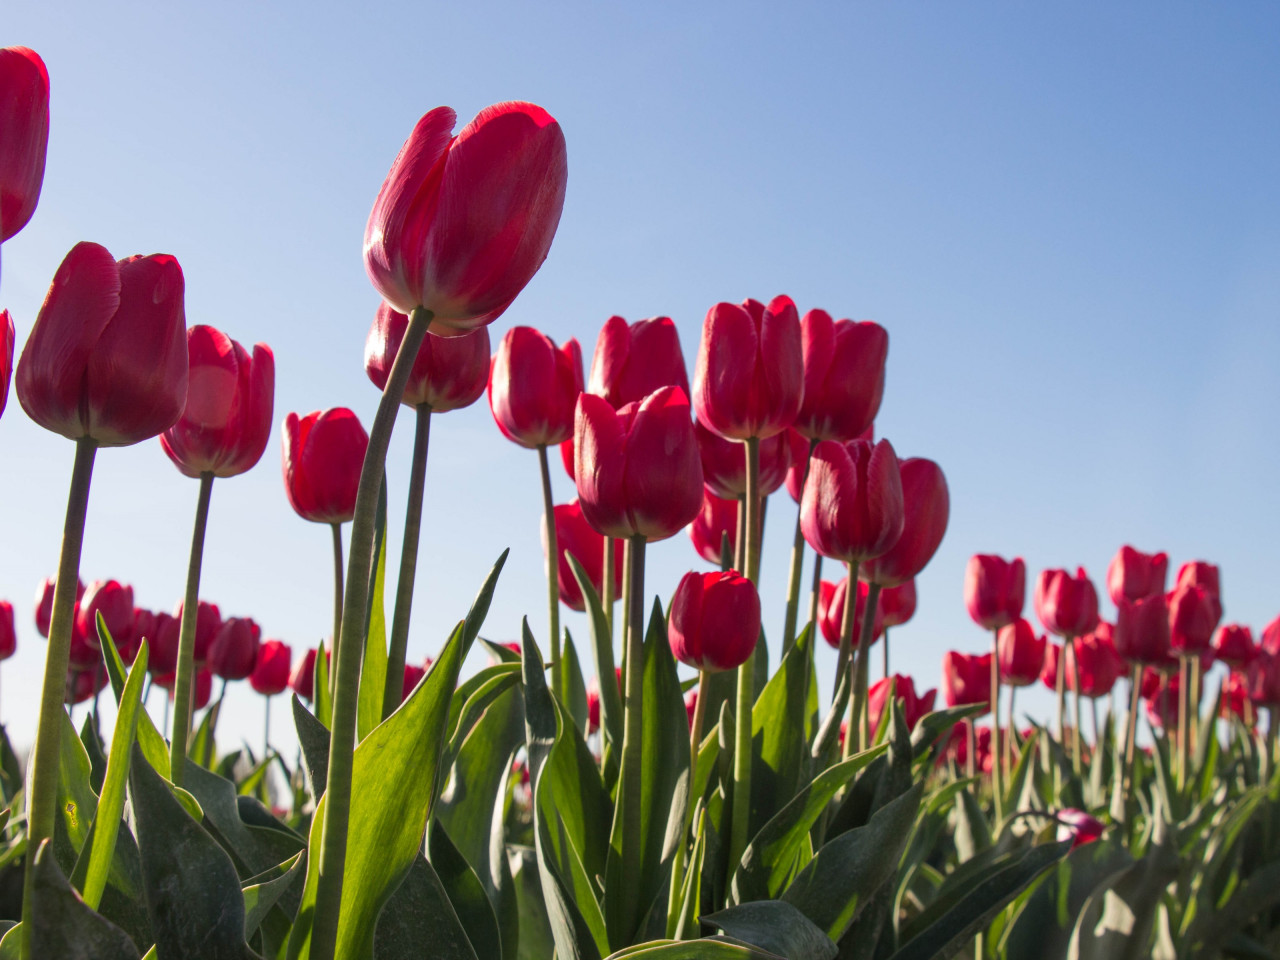 Red tulips wallpaper 1280x960